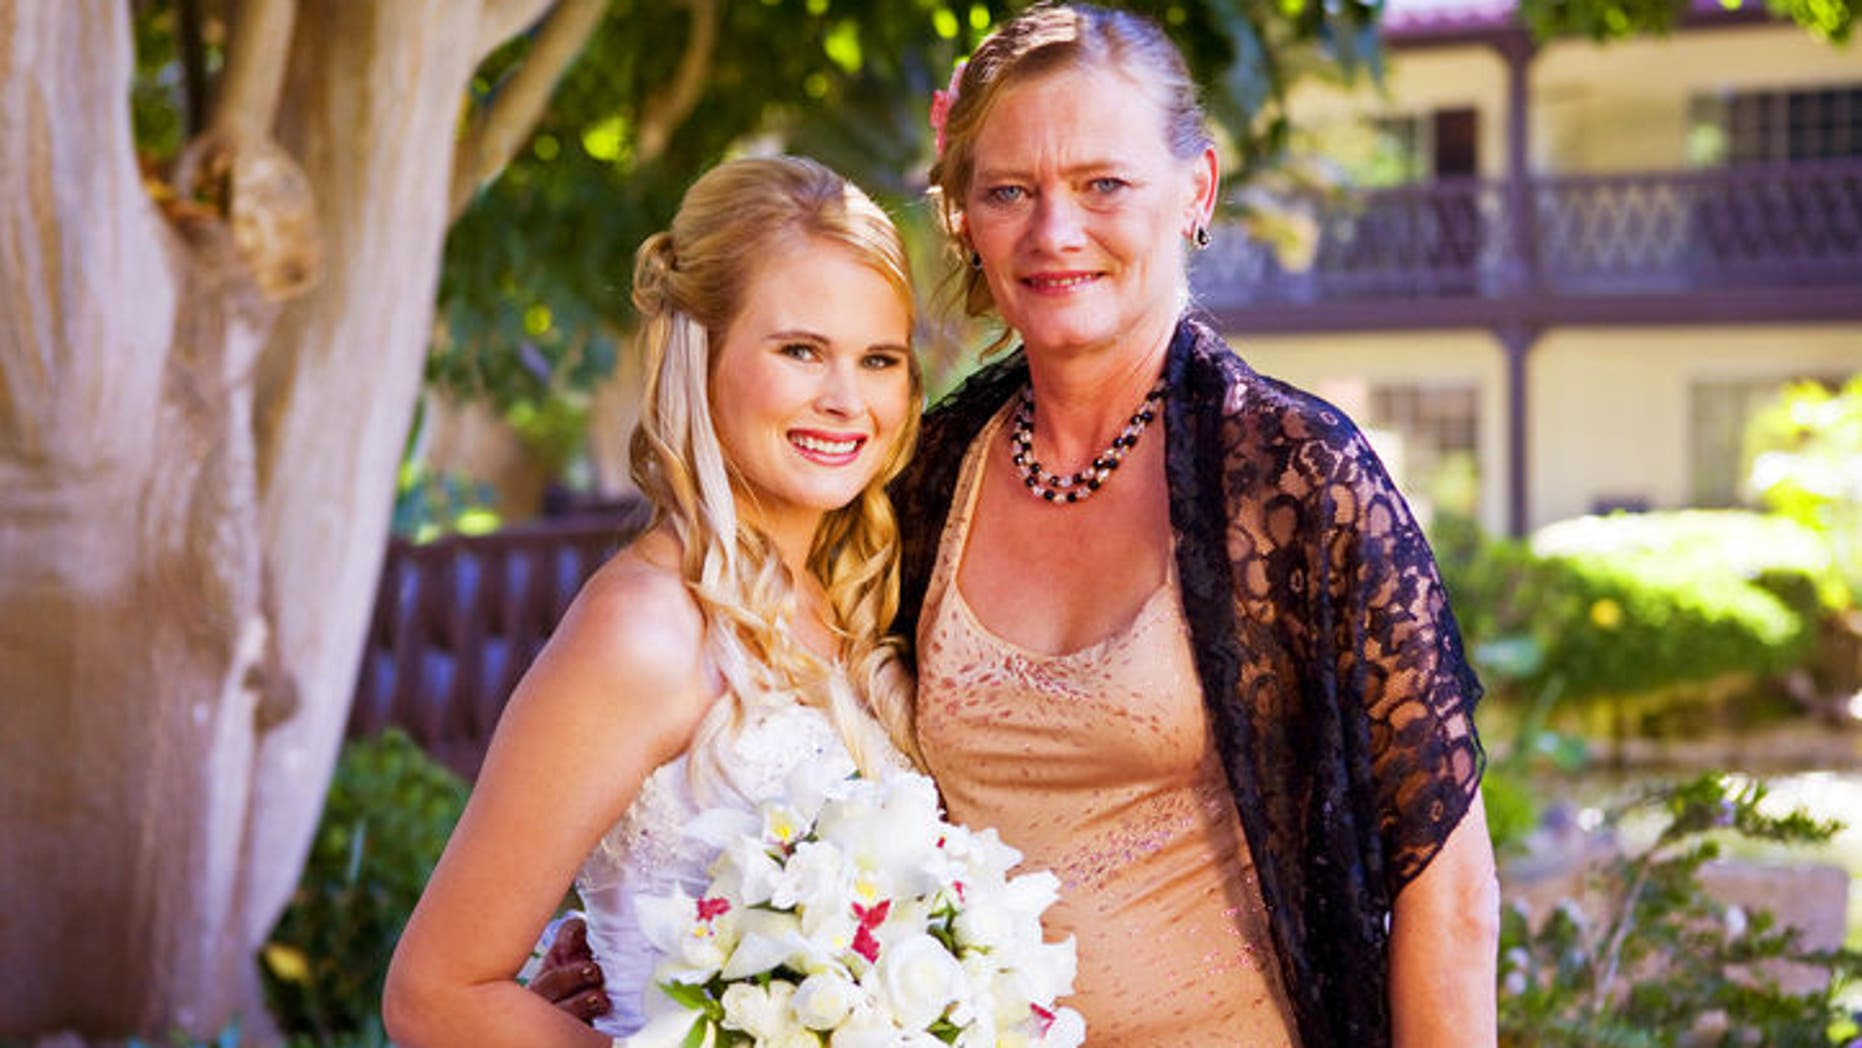 Amanda and her mother on her wedding day (image courtesy subject)